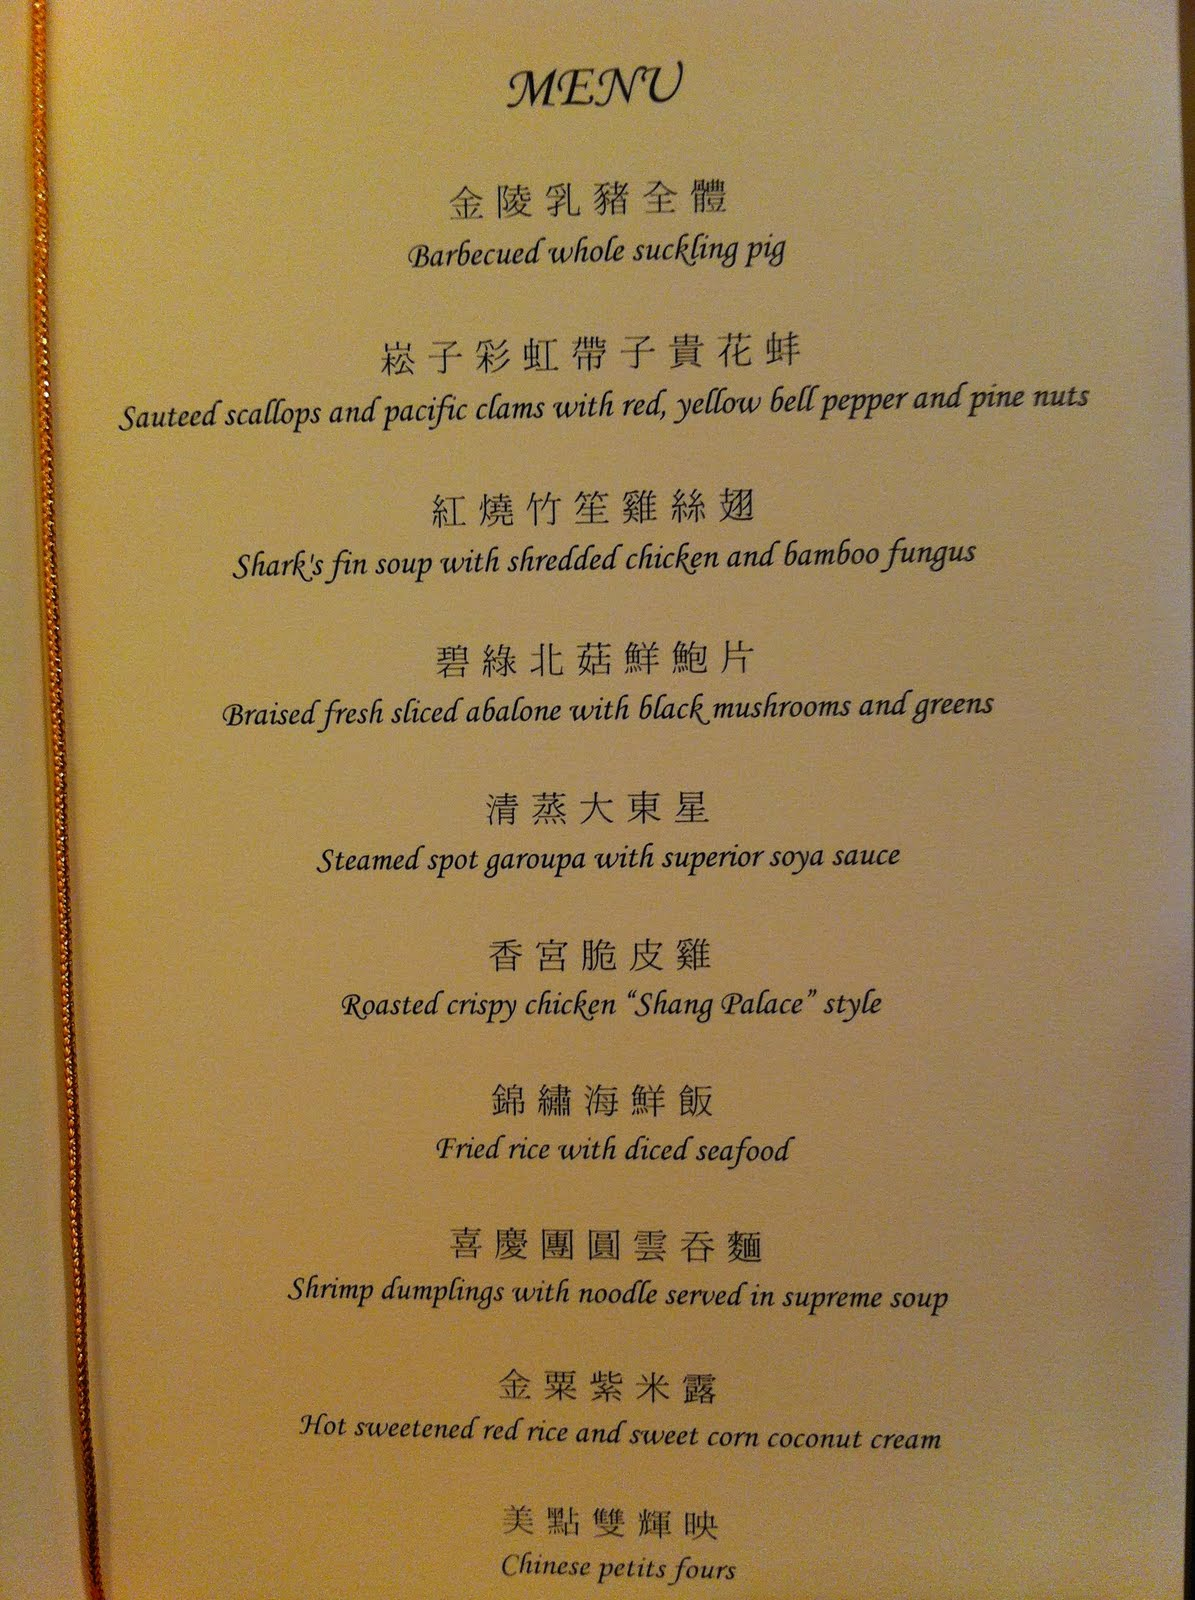 From Chinatown To China The Chinese Wedding A 10 Course